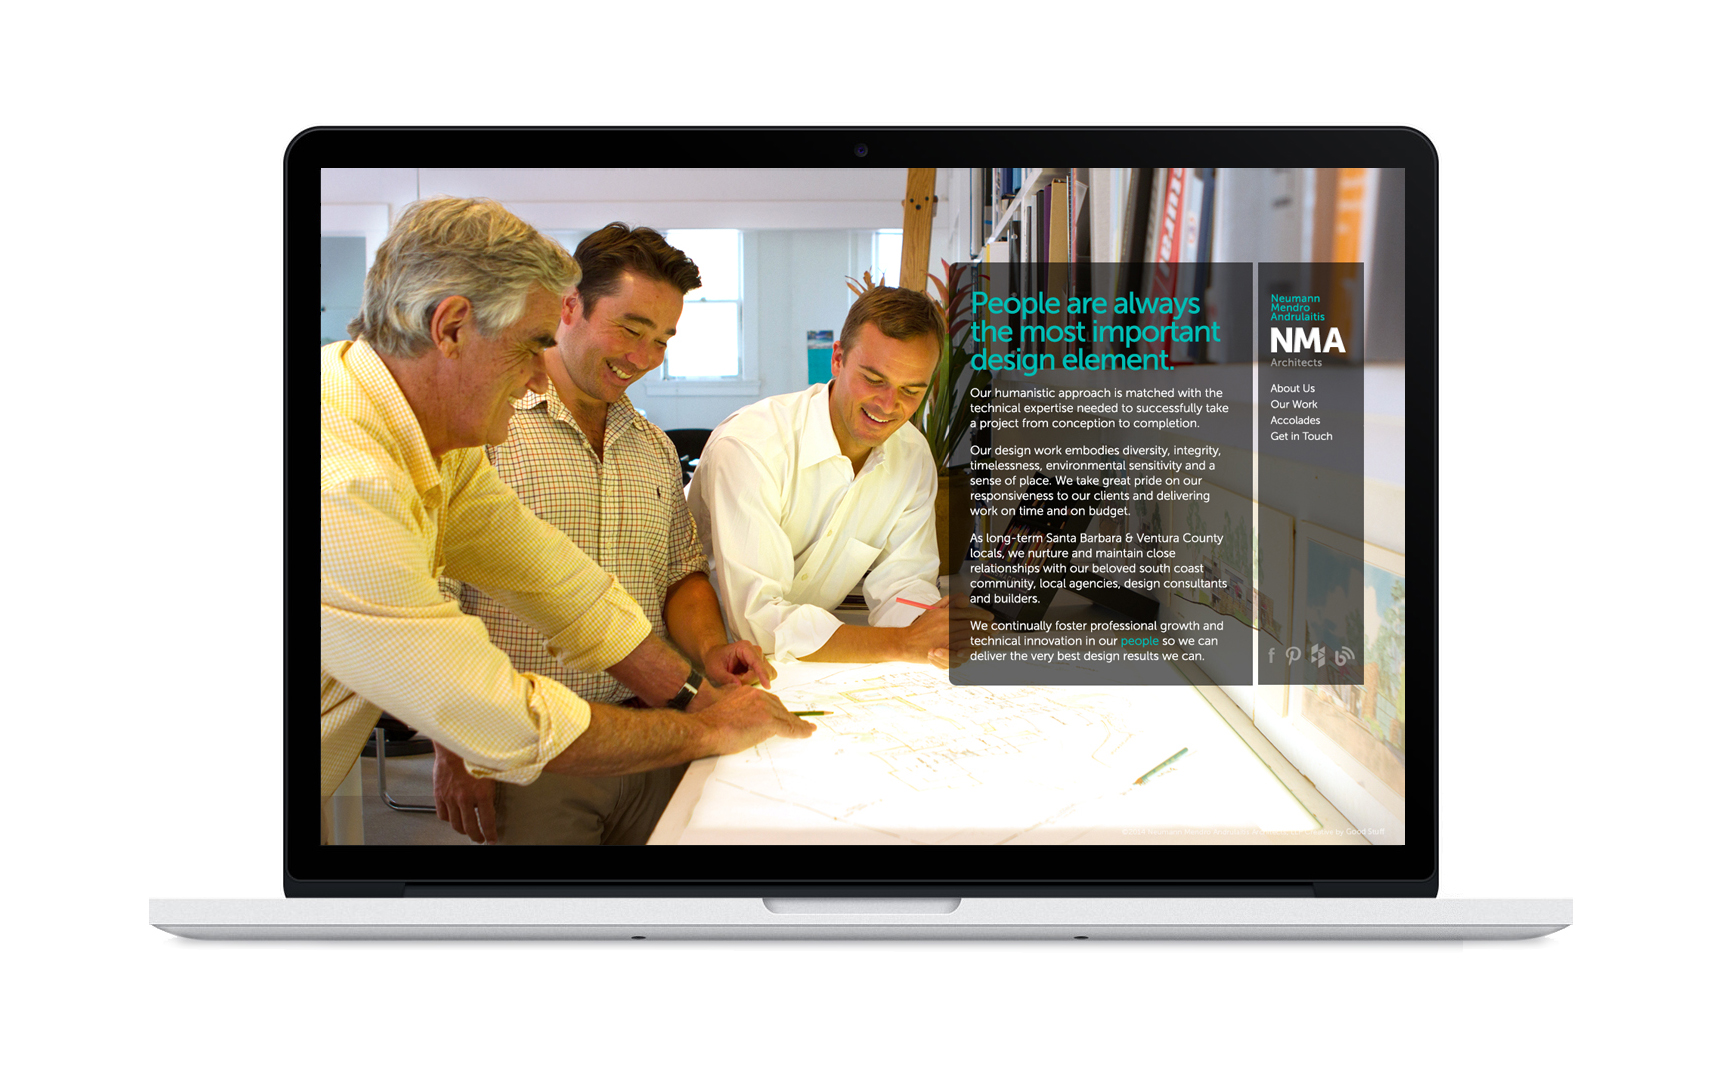 Good Stuff Partners, a brand agency in the Bay Area, revamped architect firm NMA's brand strategy which helped them increase their digital presence.